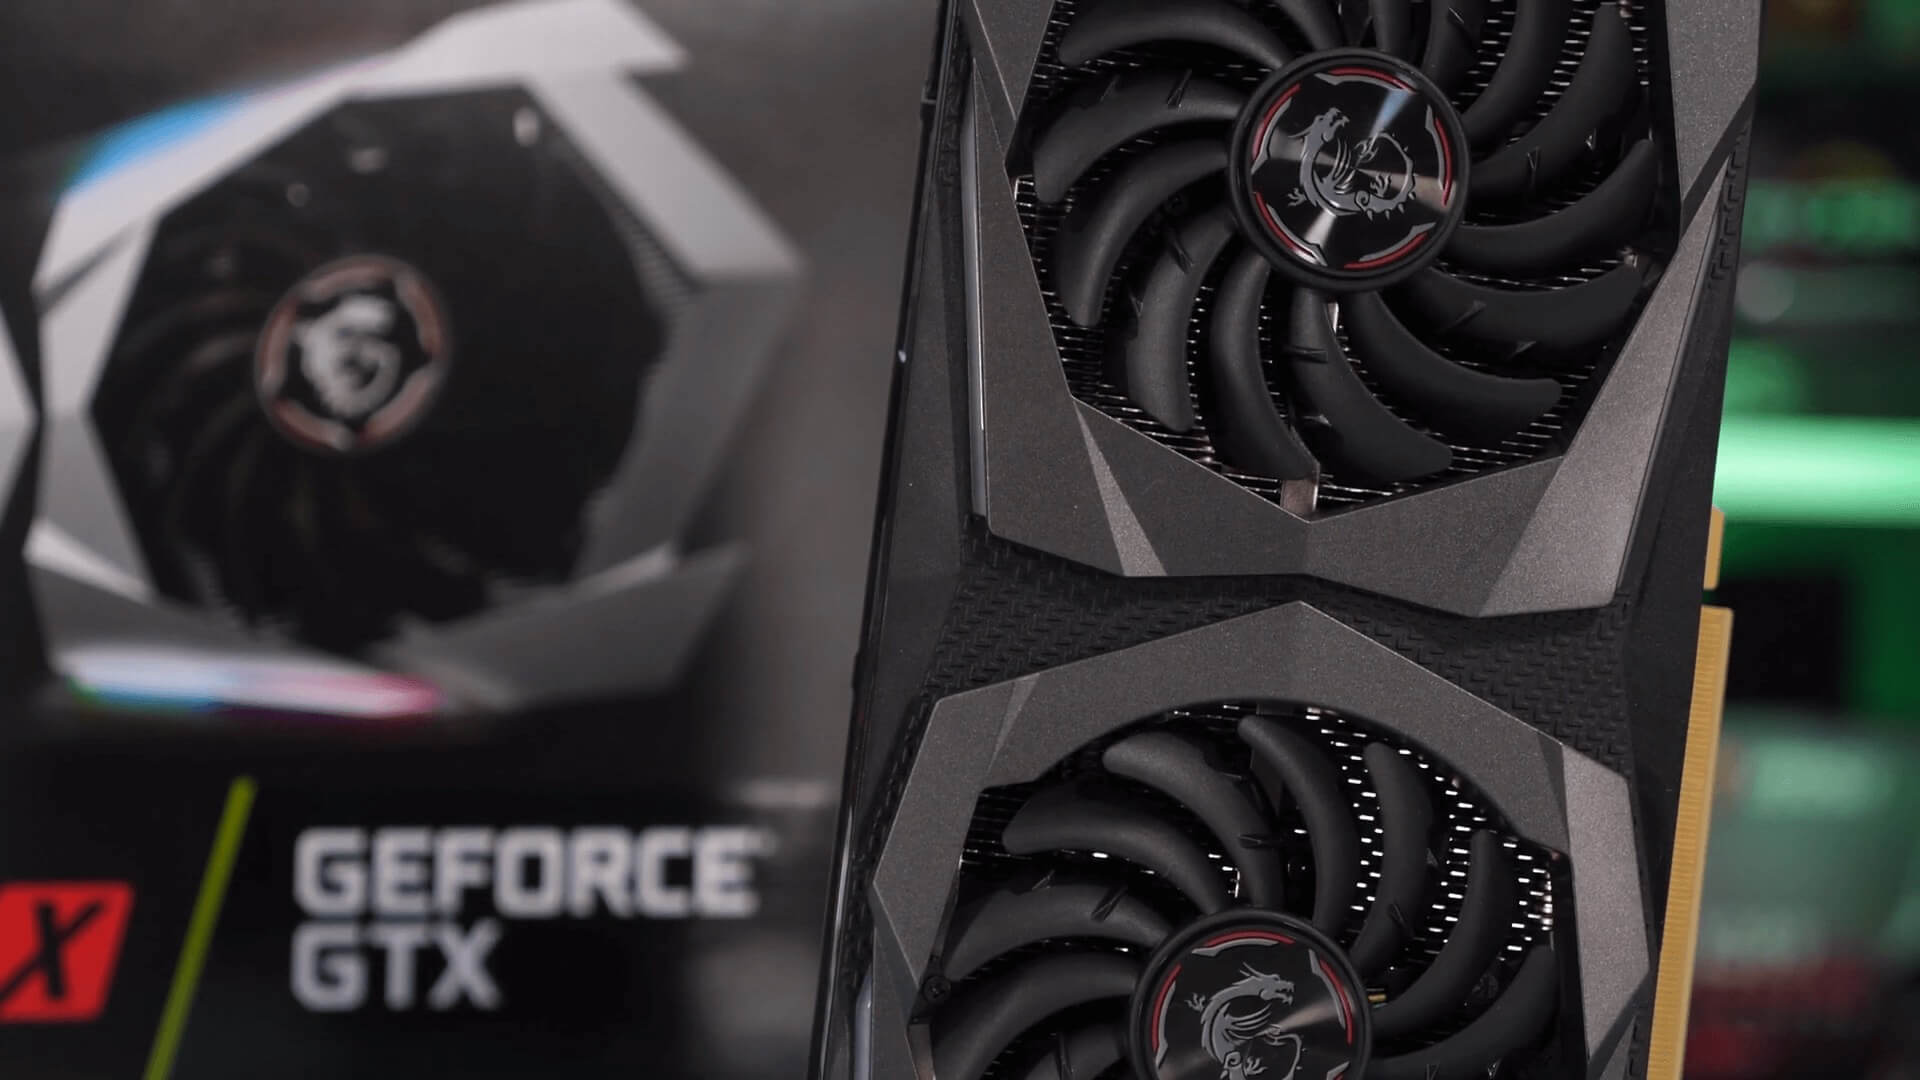 Nvidia GeForce GTX 1660 Review: Going for200